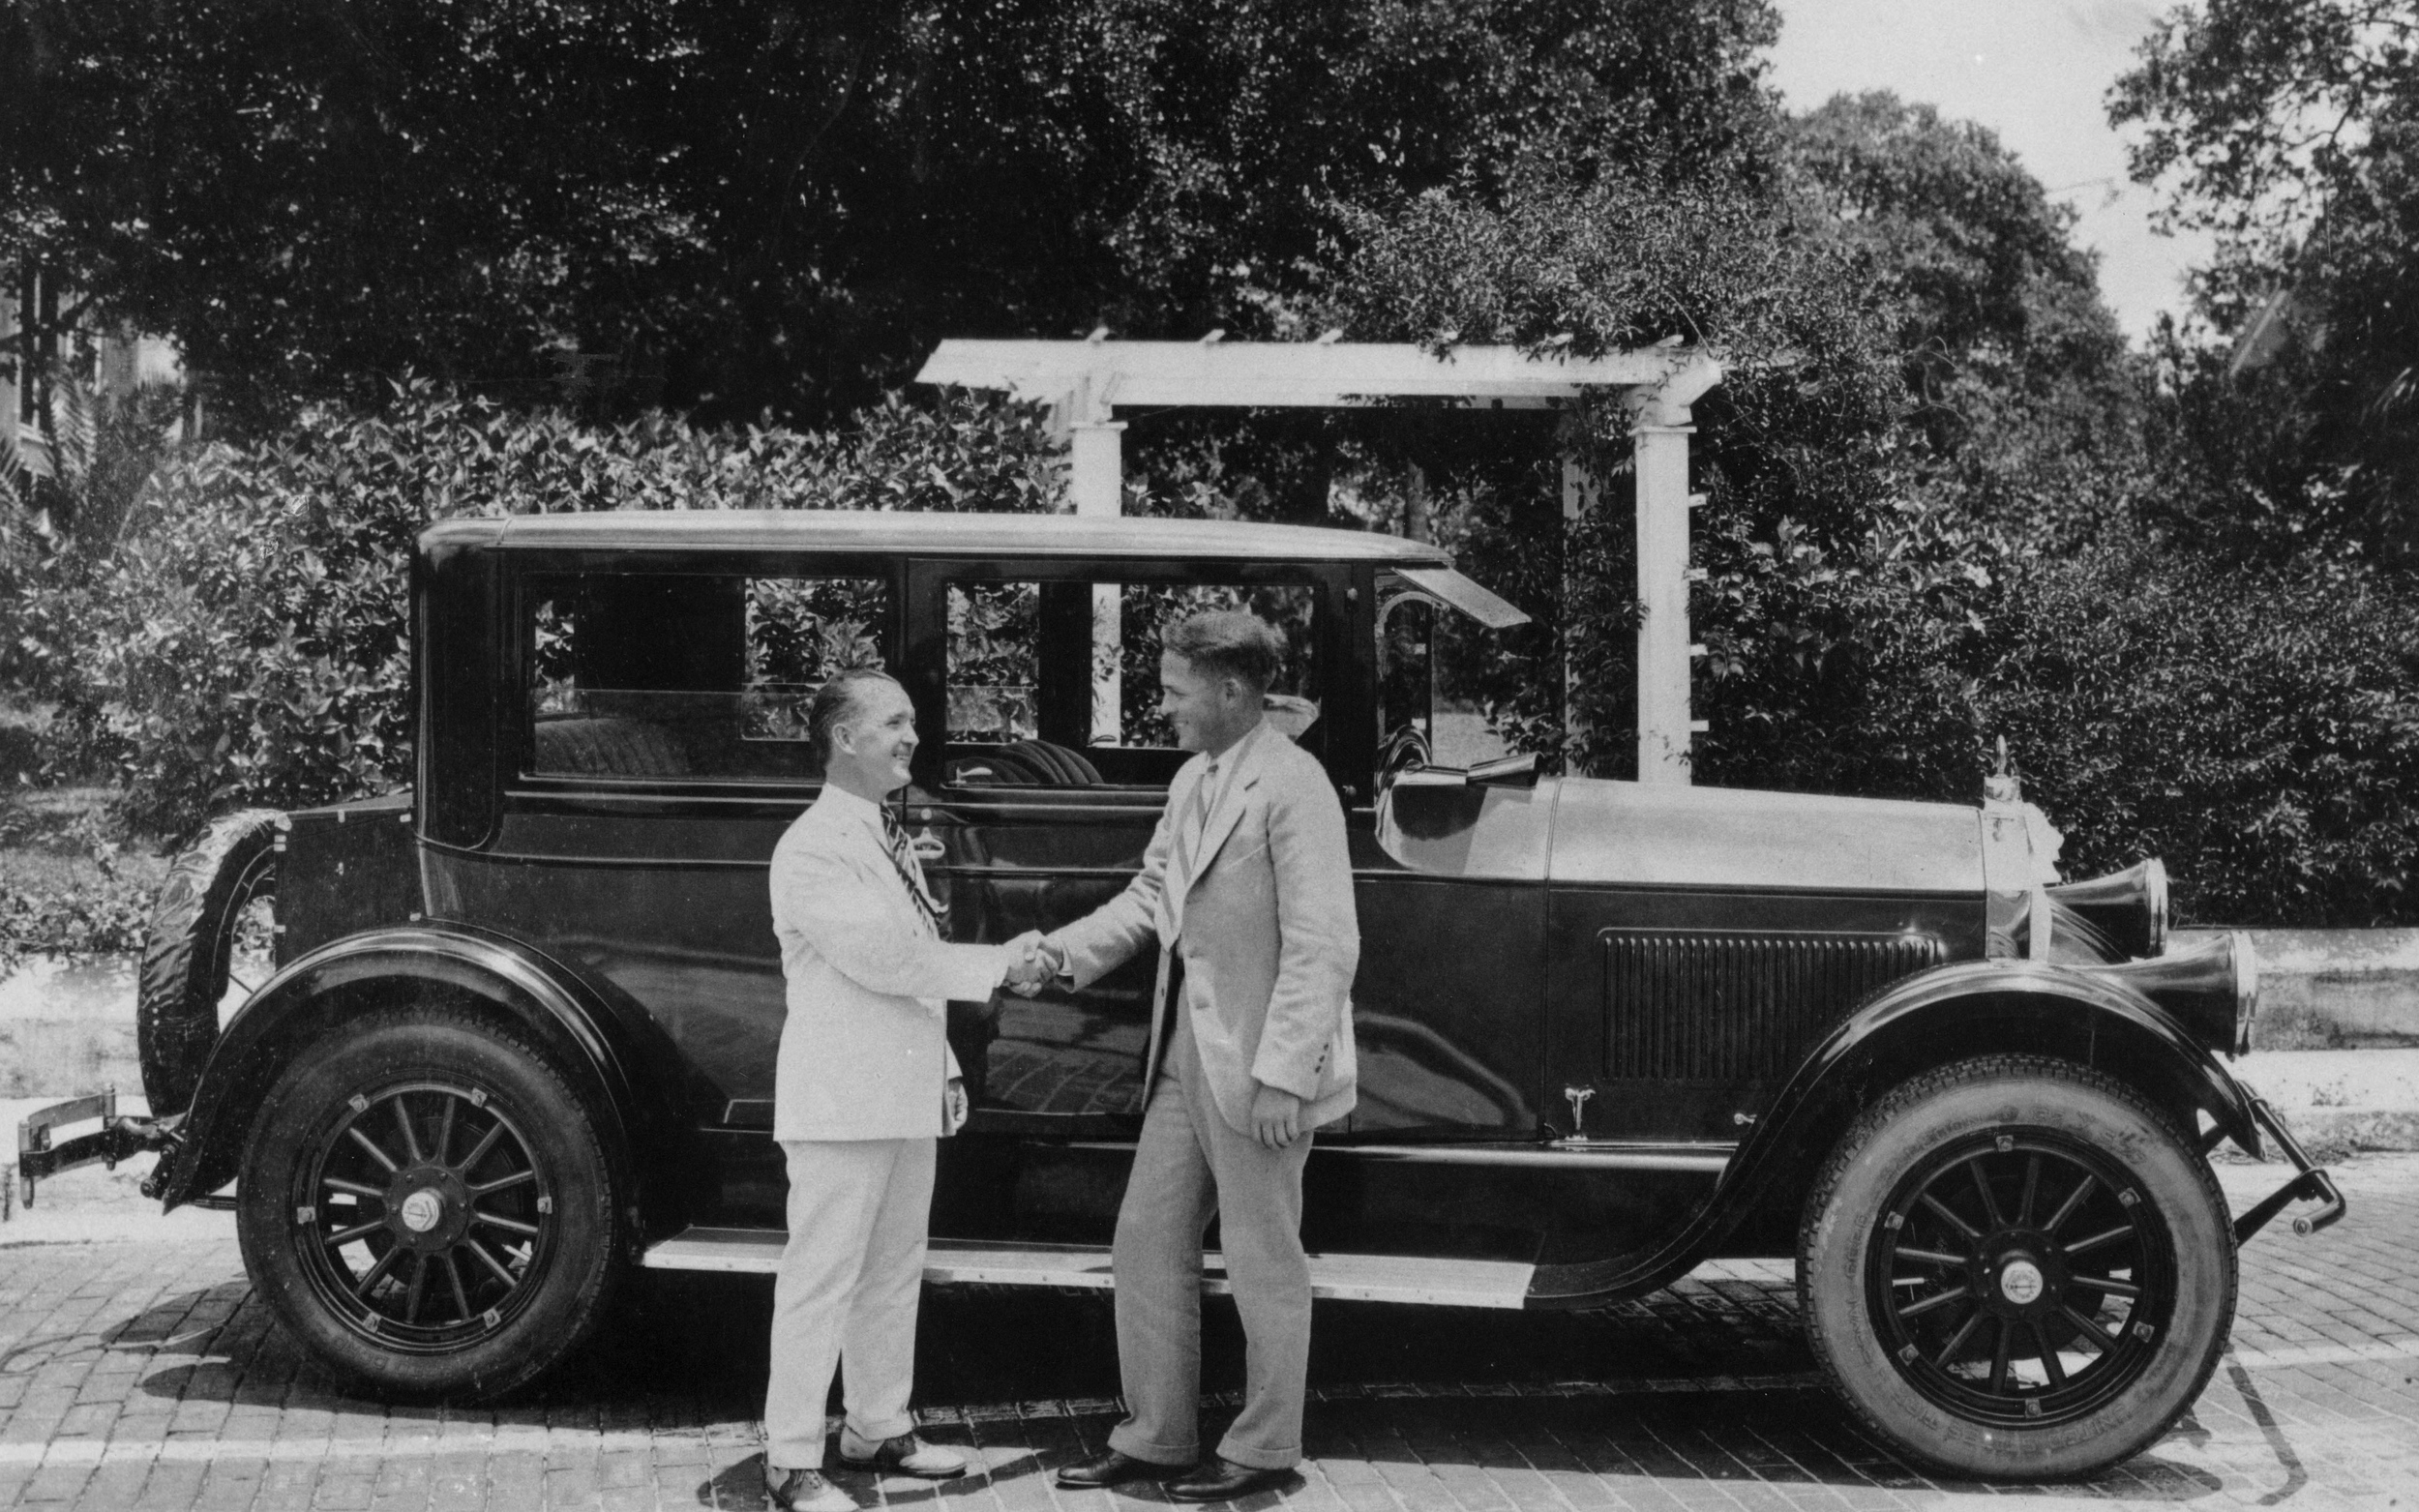 Bobby Jones accepts the gift of a new Pierce-Arrow Series 80 Coach from Jules Brazil on behalf of the City of Sarasota and the Chamber of Commerce in celebration of Bobby Jones' 1926 Open Championship at Royal Lytham & St. Annes Golf Club. Jones drove the car back home to Atlanta following this train trip to Sarasota. Photograph Courtesy of Sarasota County Historical Resources.